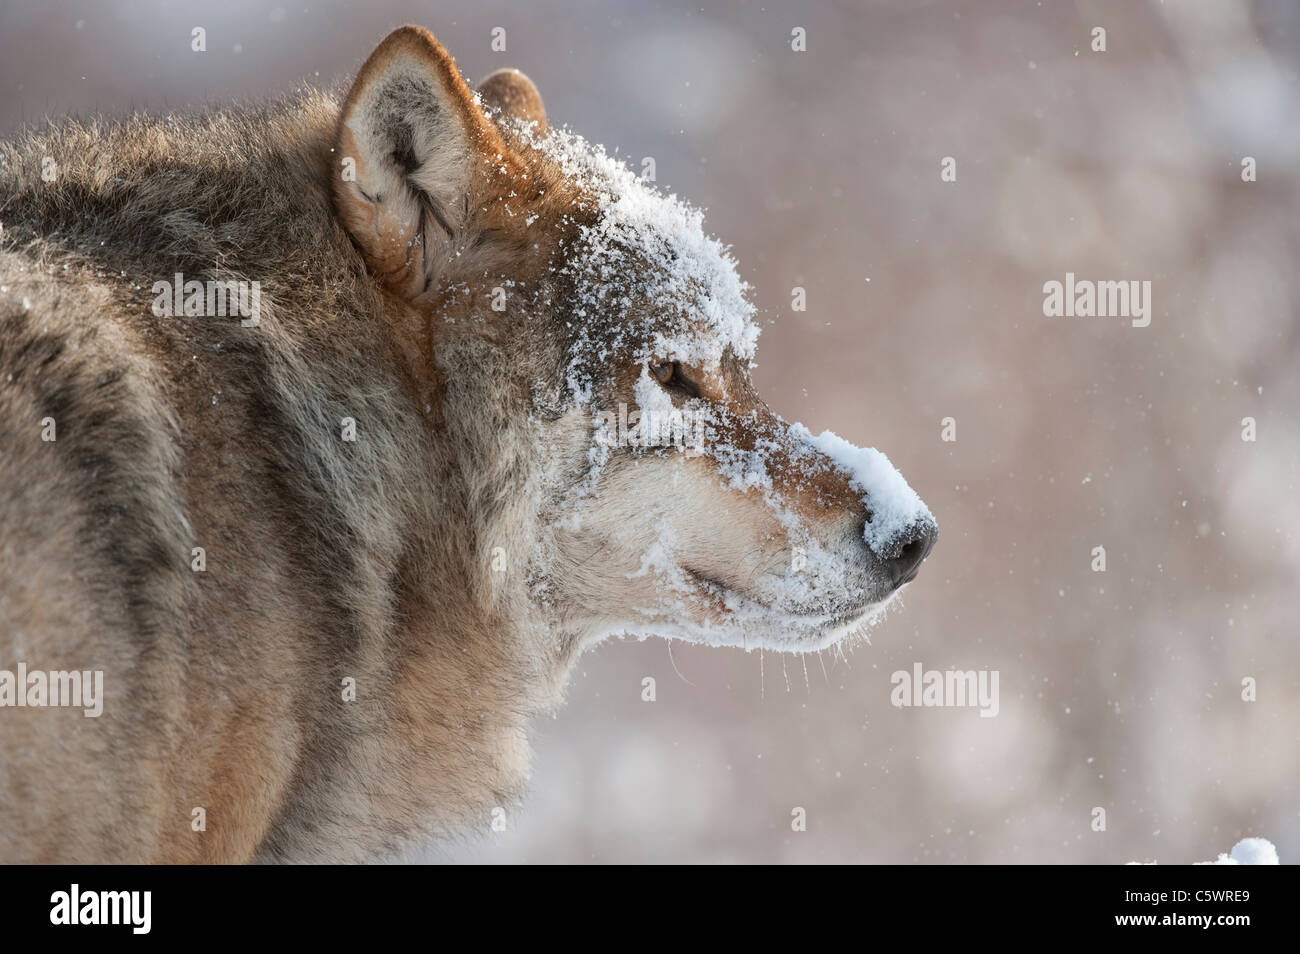 European Grey Wolf (Canis lupus), portrait of alpha male in winter (taken in controlled conditions). Norway. - Stock Image